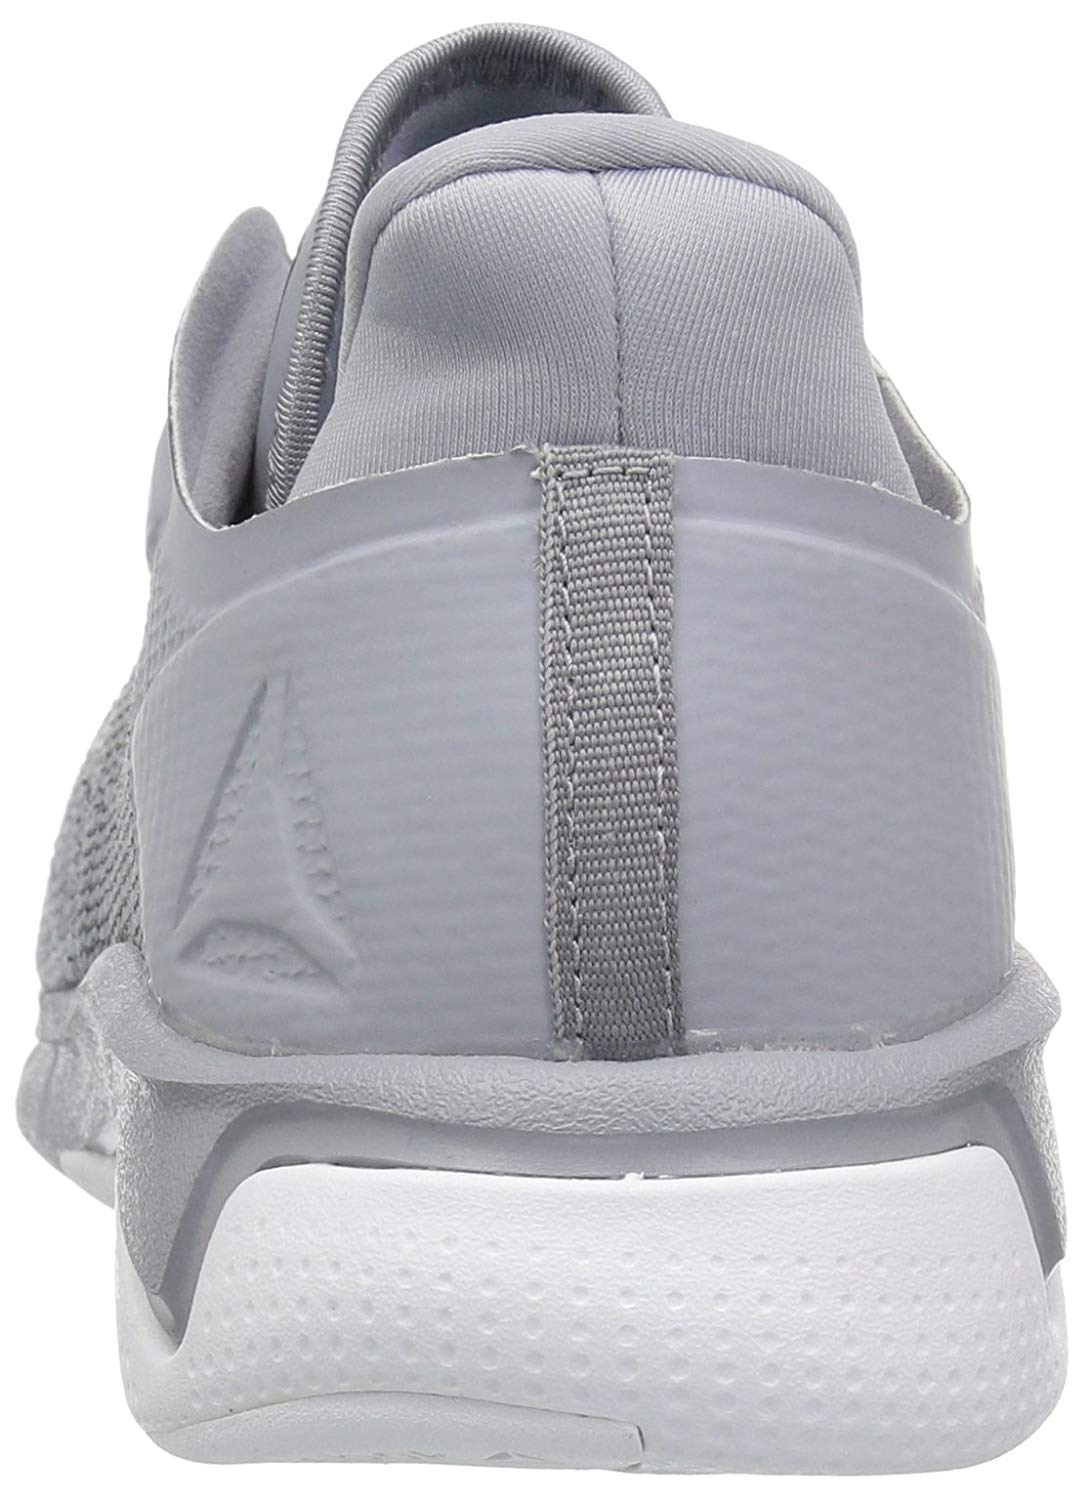 4554260813b Reebok Womens FSTR Flexweave Fabric Low Top Lace Up Running